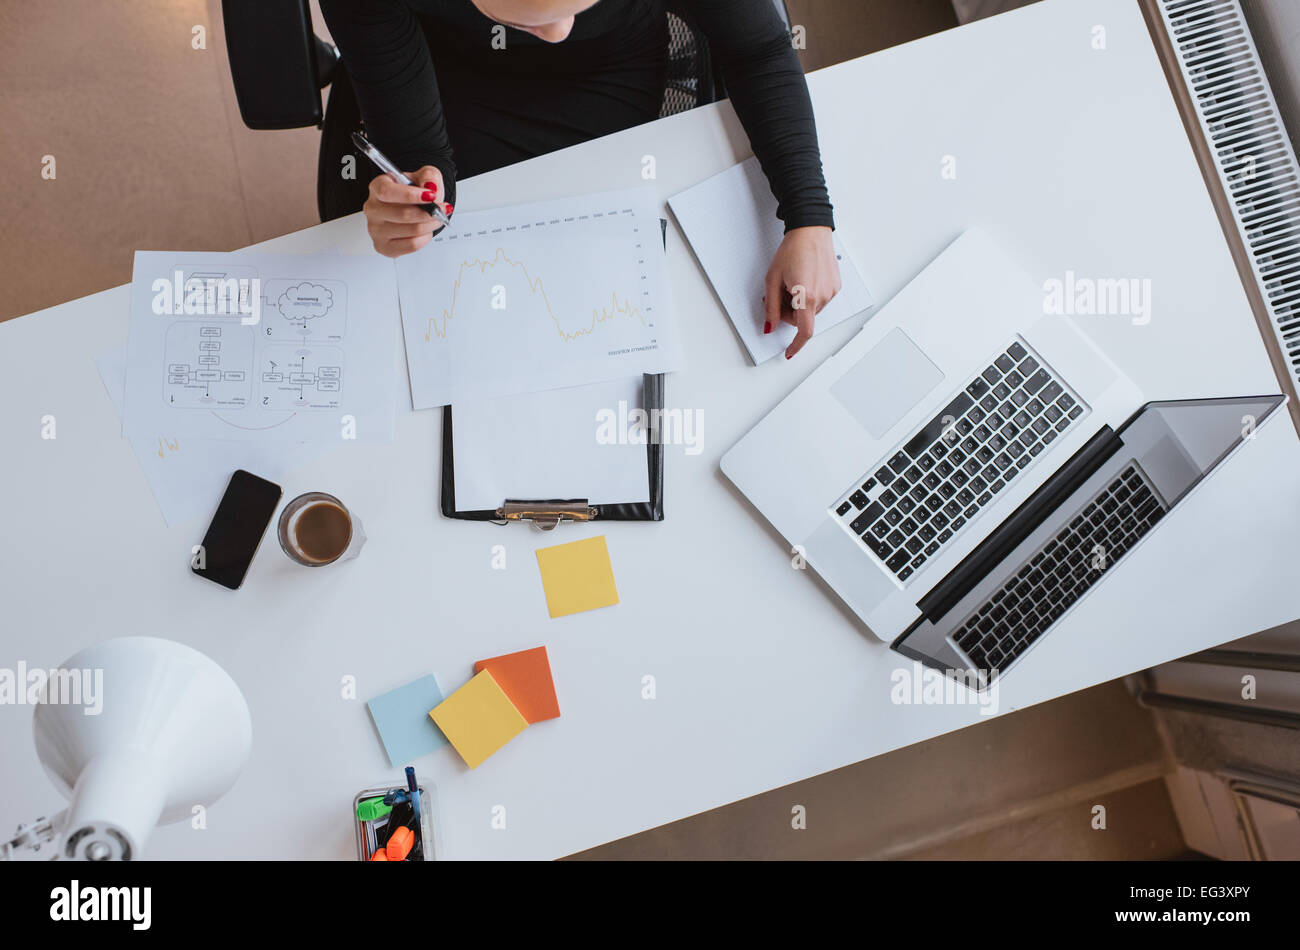 Top view of woman executive working at her desk with chart and laptop. Reviewing financial data and plotting progress - Stock Image